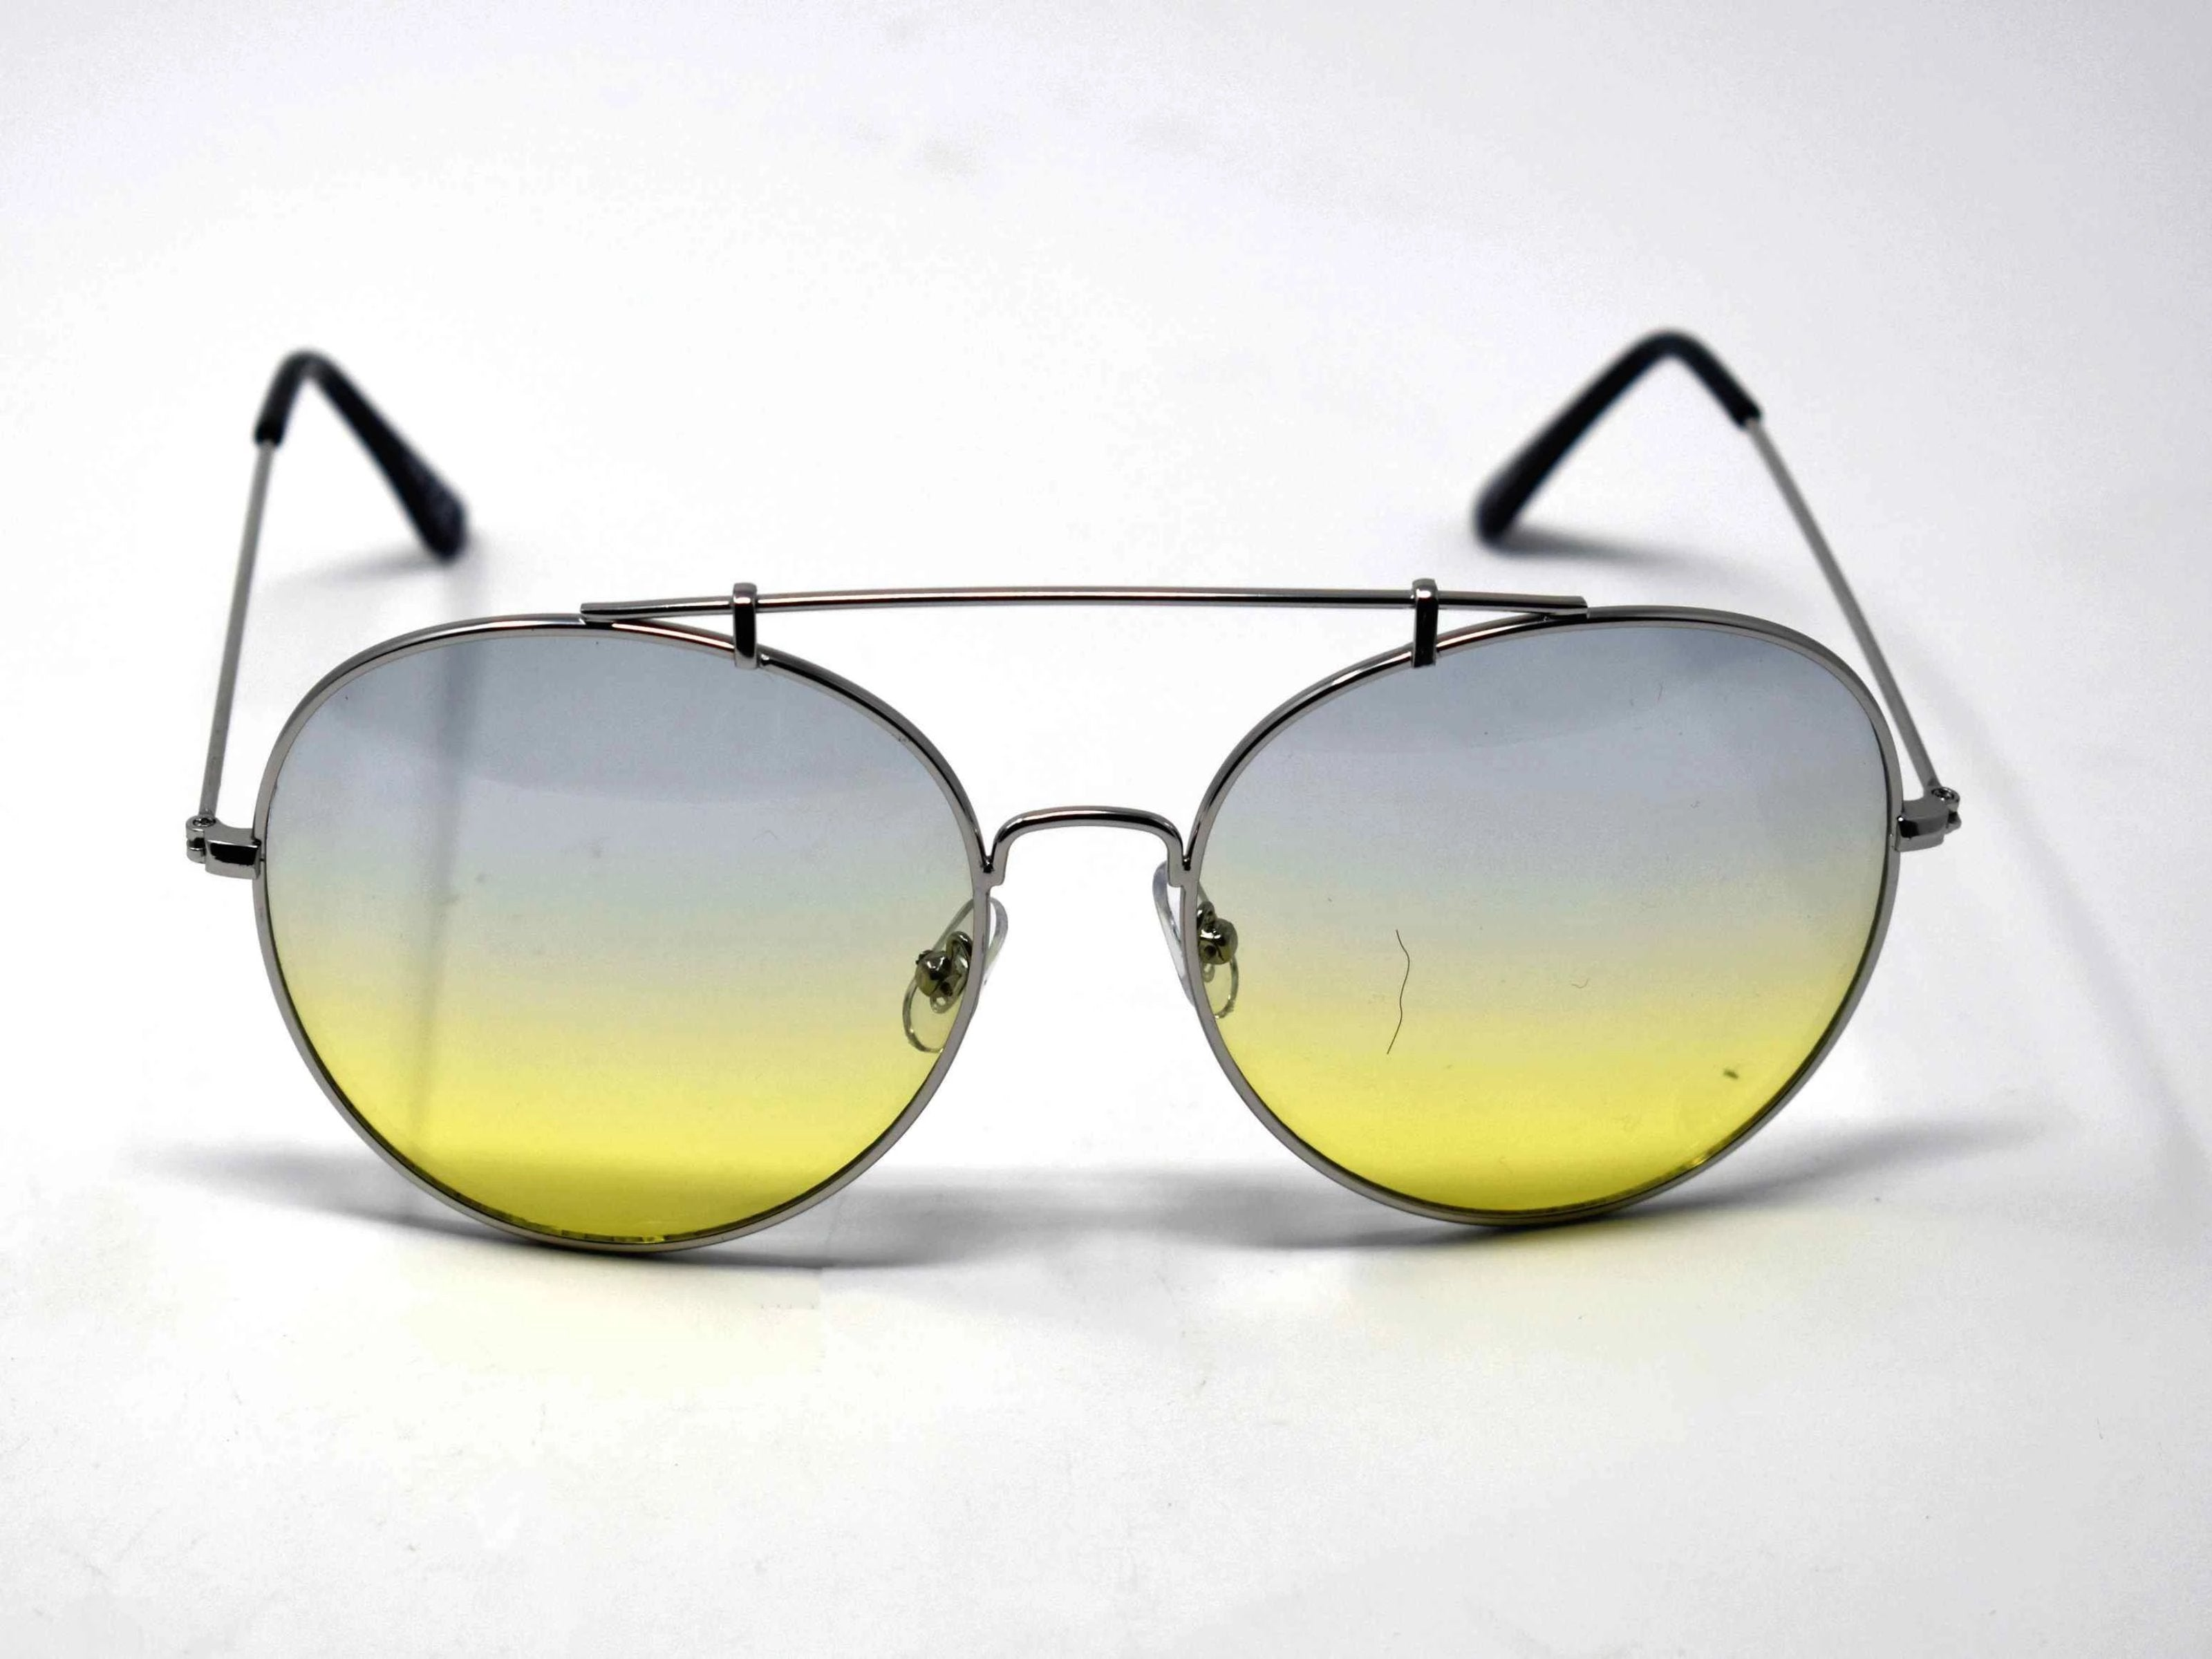 Va Va Voom will be consistently heard in these Vervain silver frame aviator Gray and Green ombre lens sunglasses.